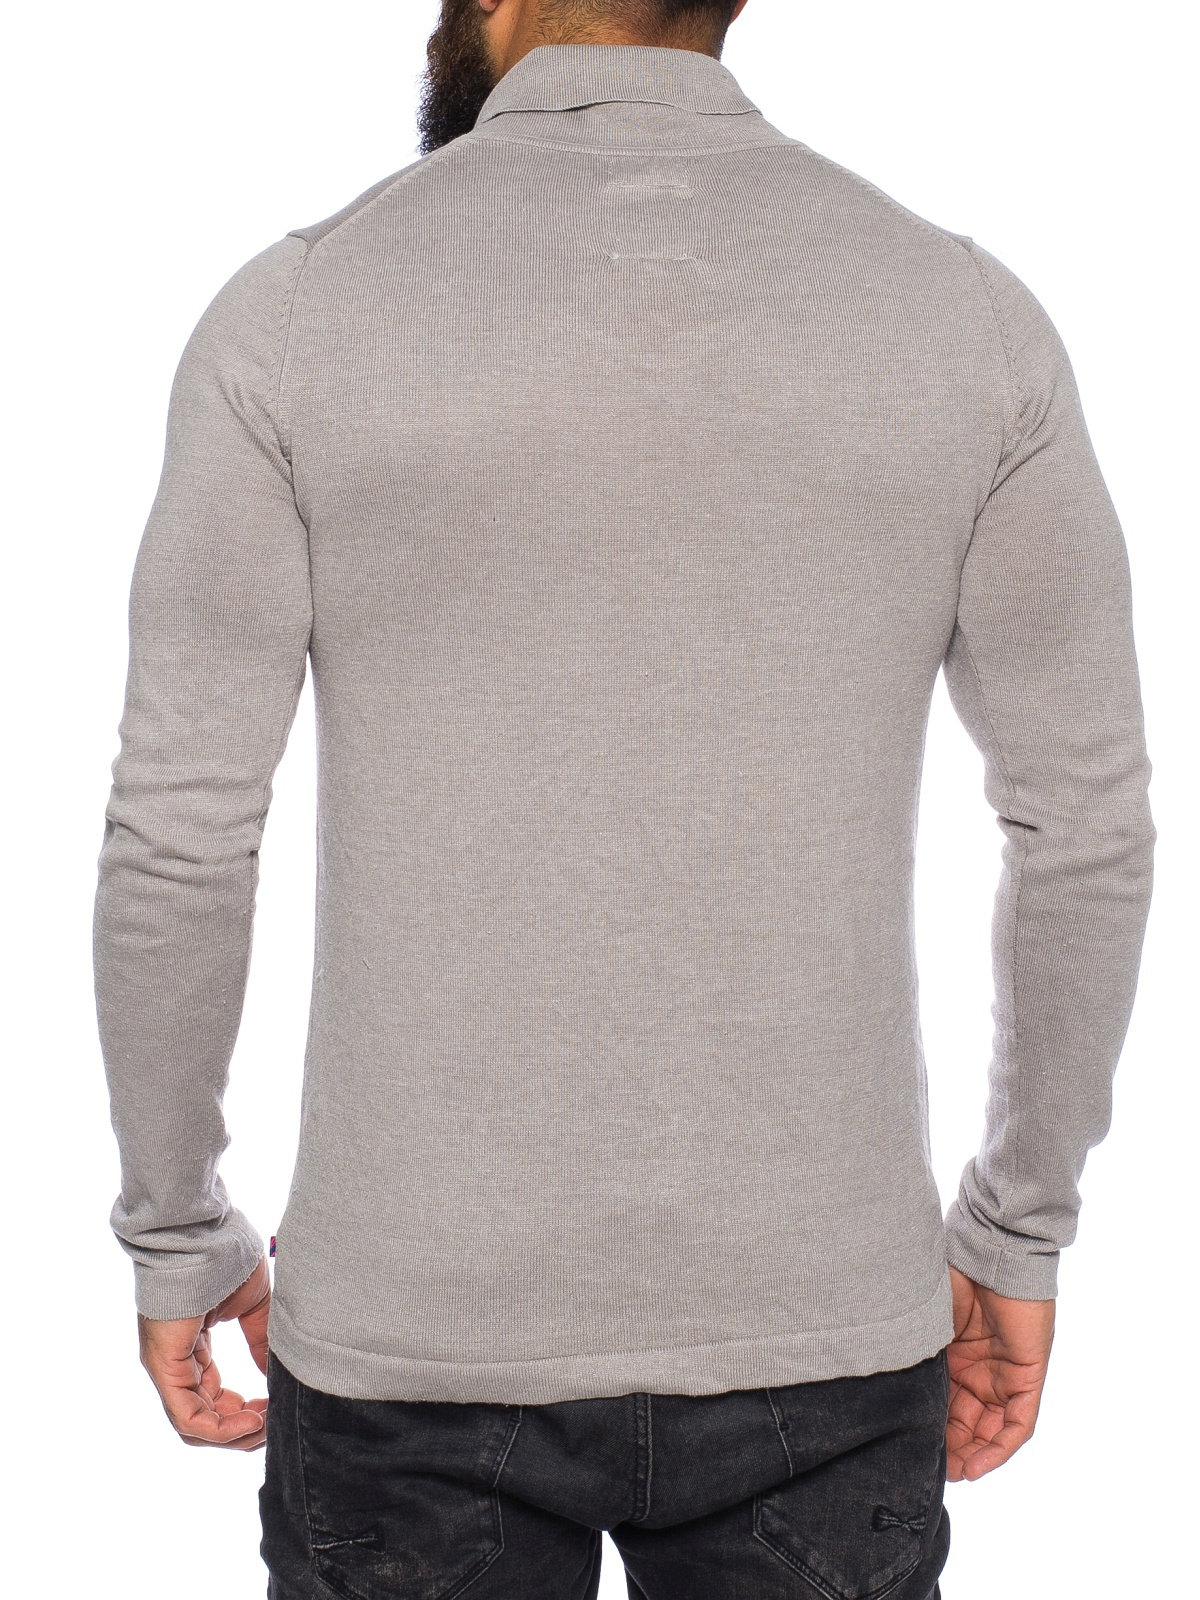 tom tailor herren pullover s m l xl xxl pulli shirt strick grau schalkragen neu ebay. Black Bedroom Furniture Sets. Home Design Ideas